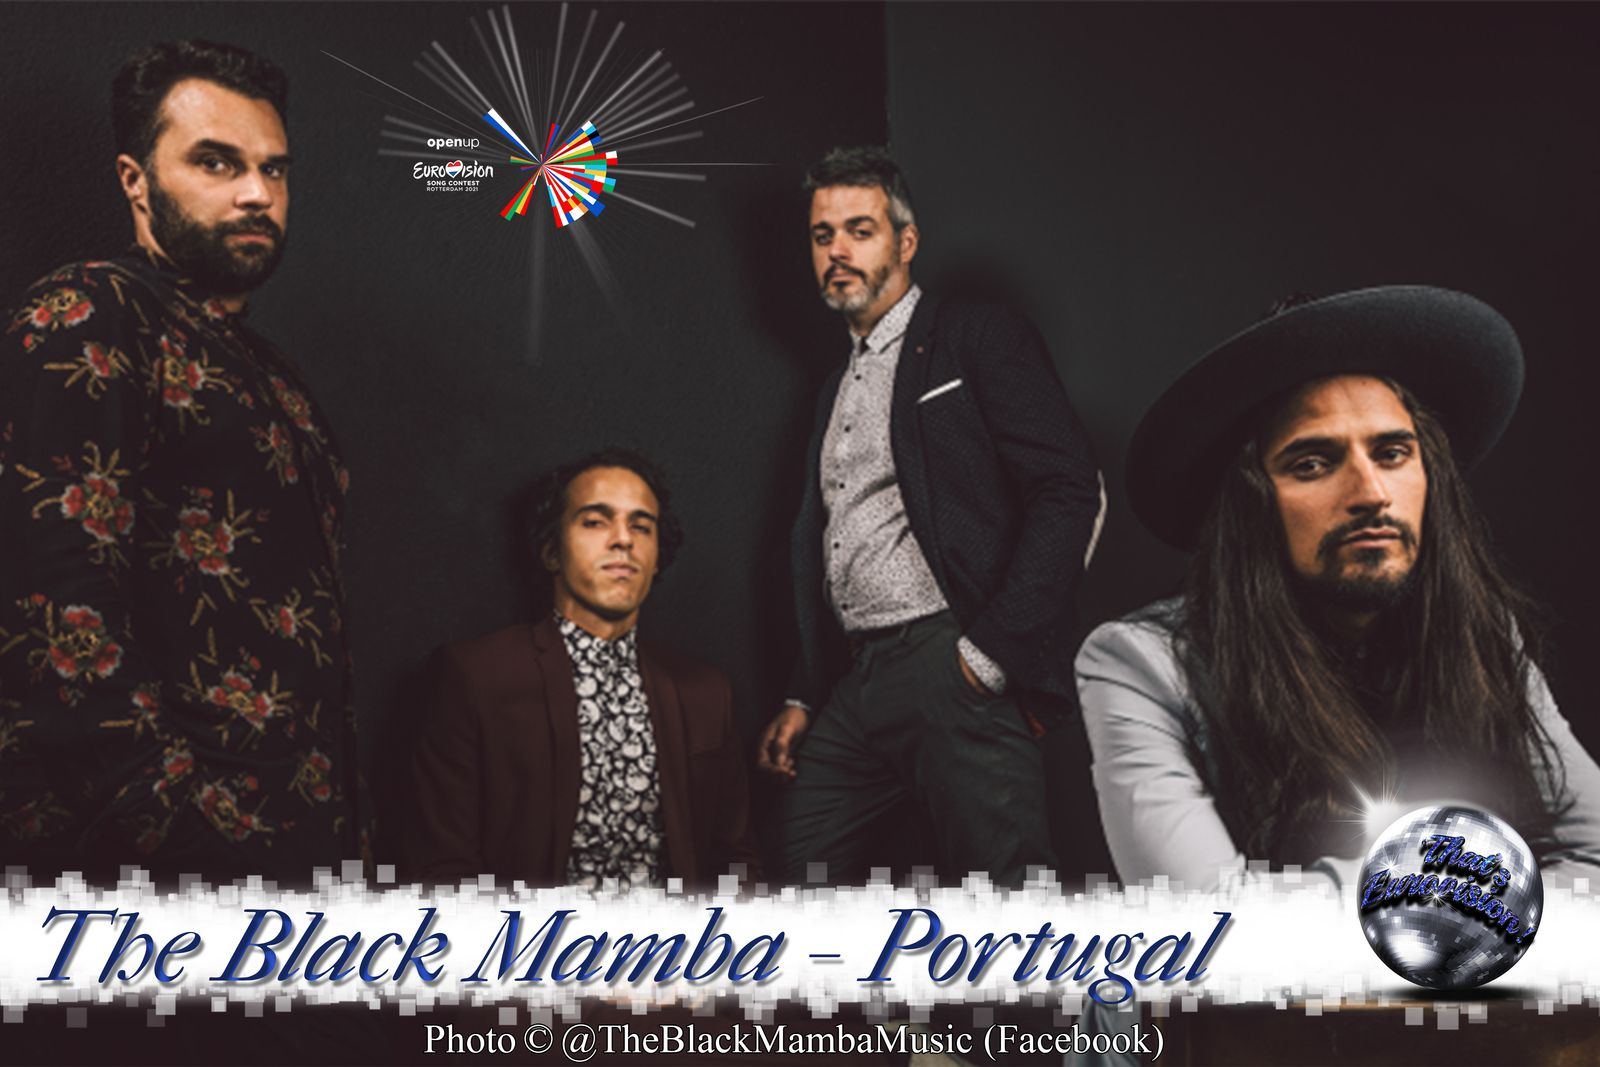 Portugal 2021 - The Black Mamba (Love Is on My Side)